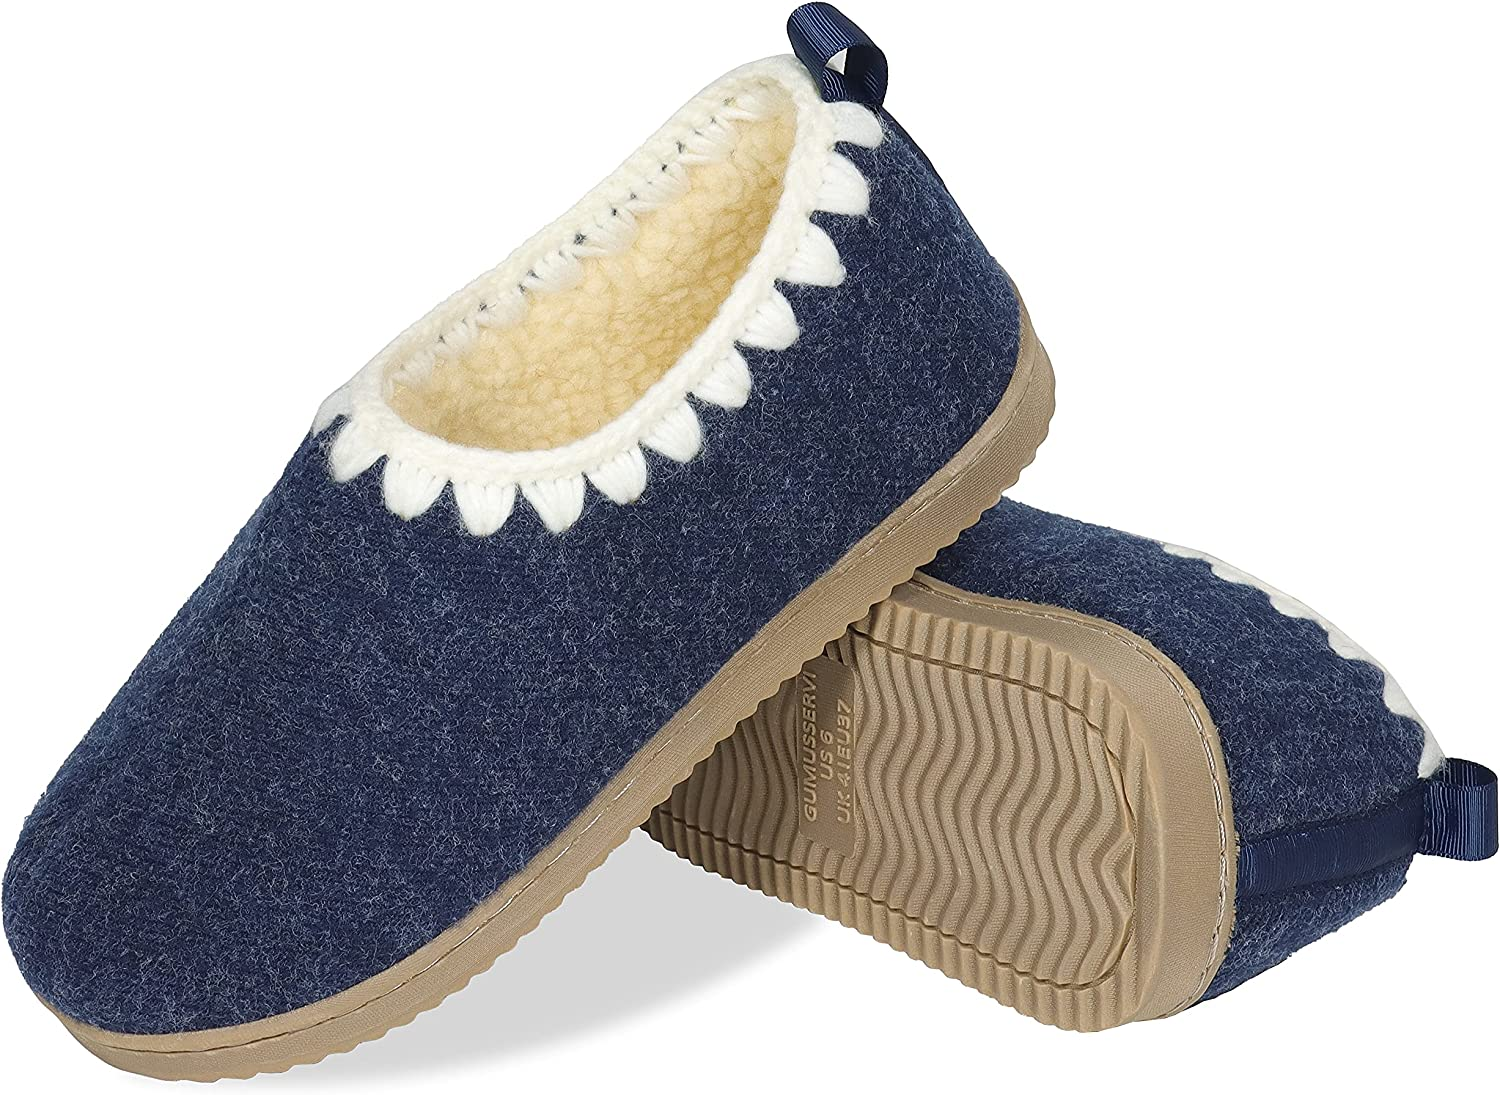 Quality inspection Gumusservi Women's Cozy Memory Over item handling ☆ Foam with Hand Slippers Crocheted